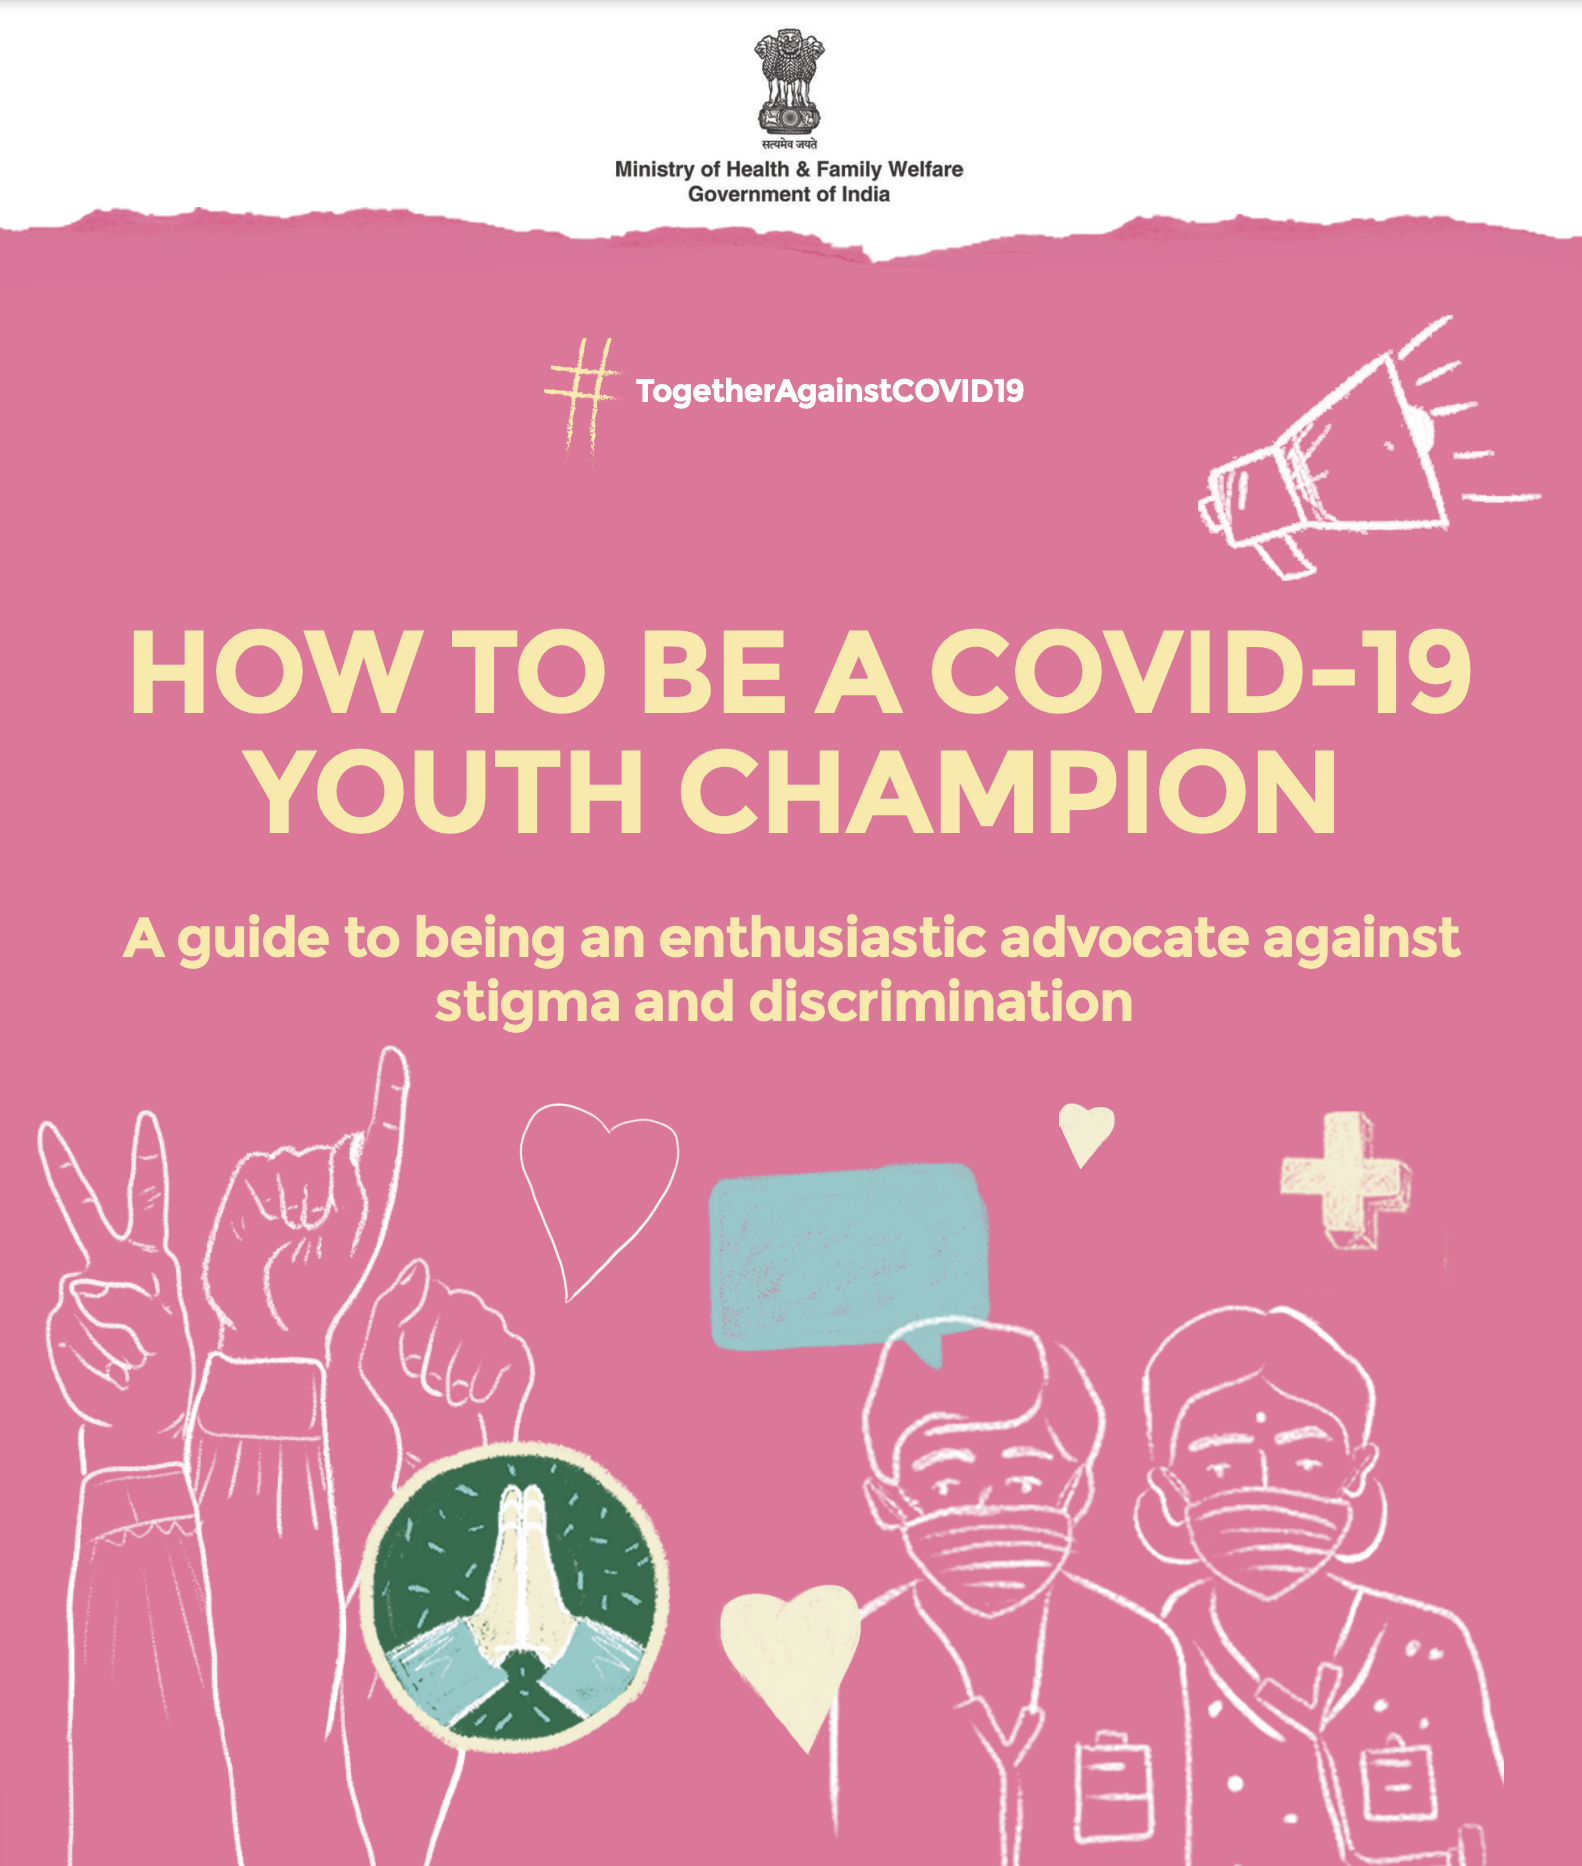 How to Be a COVID-19 Youth Champion